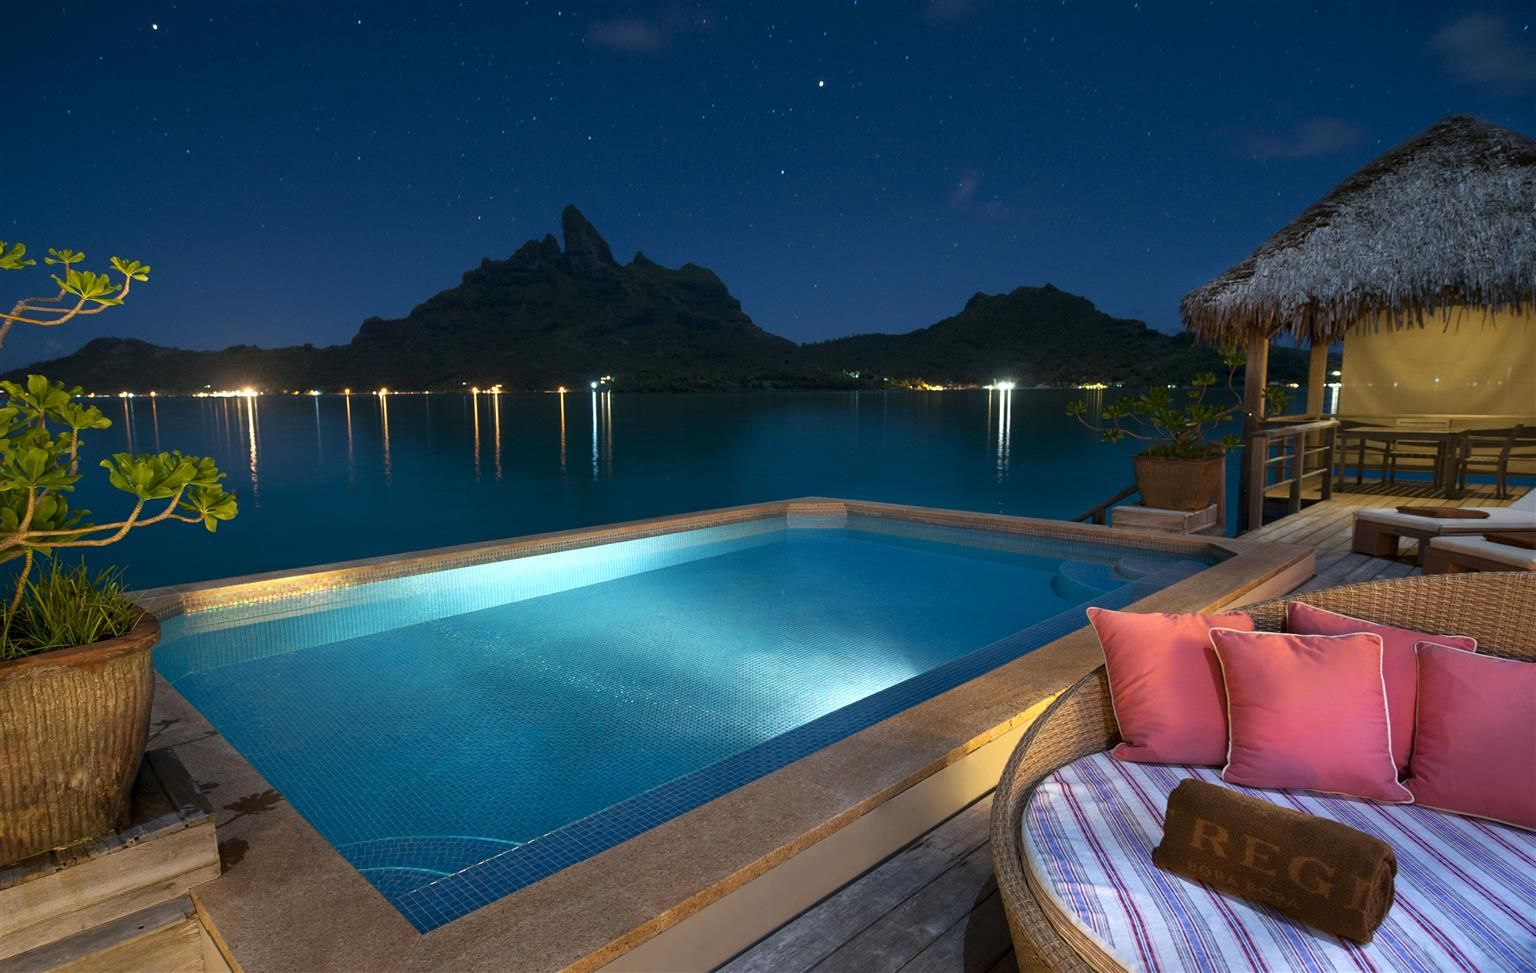 Popular Wallpaper High Resolution Bora Bora - 29fdb3ba3e0ae3f1ee3bfa462c516de8  2018_849178.jpg